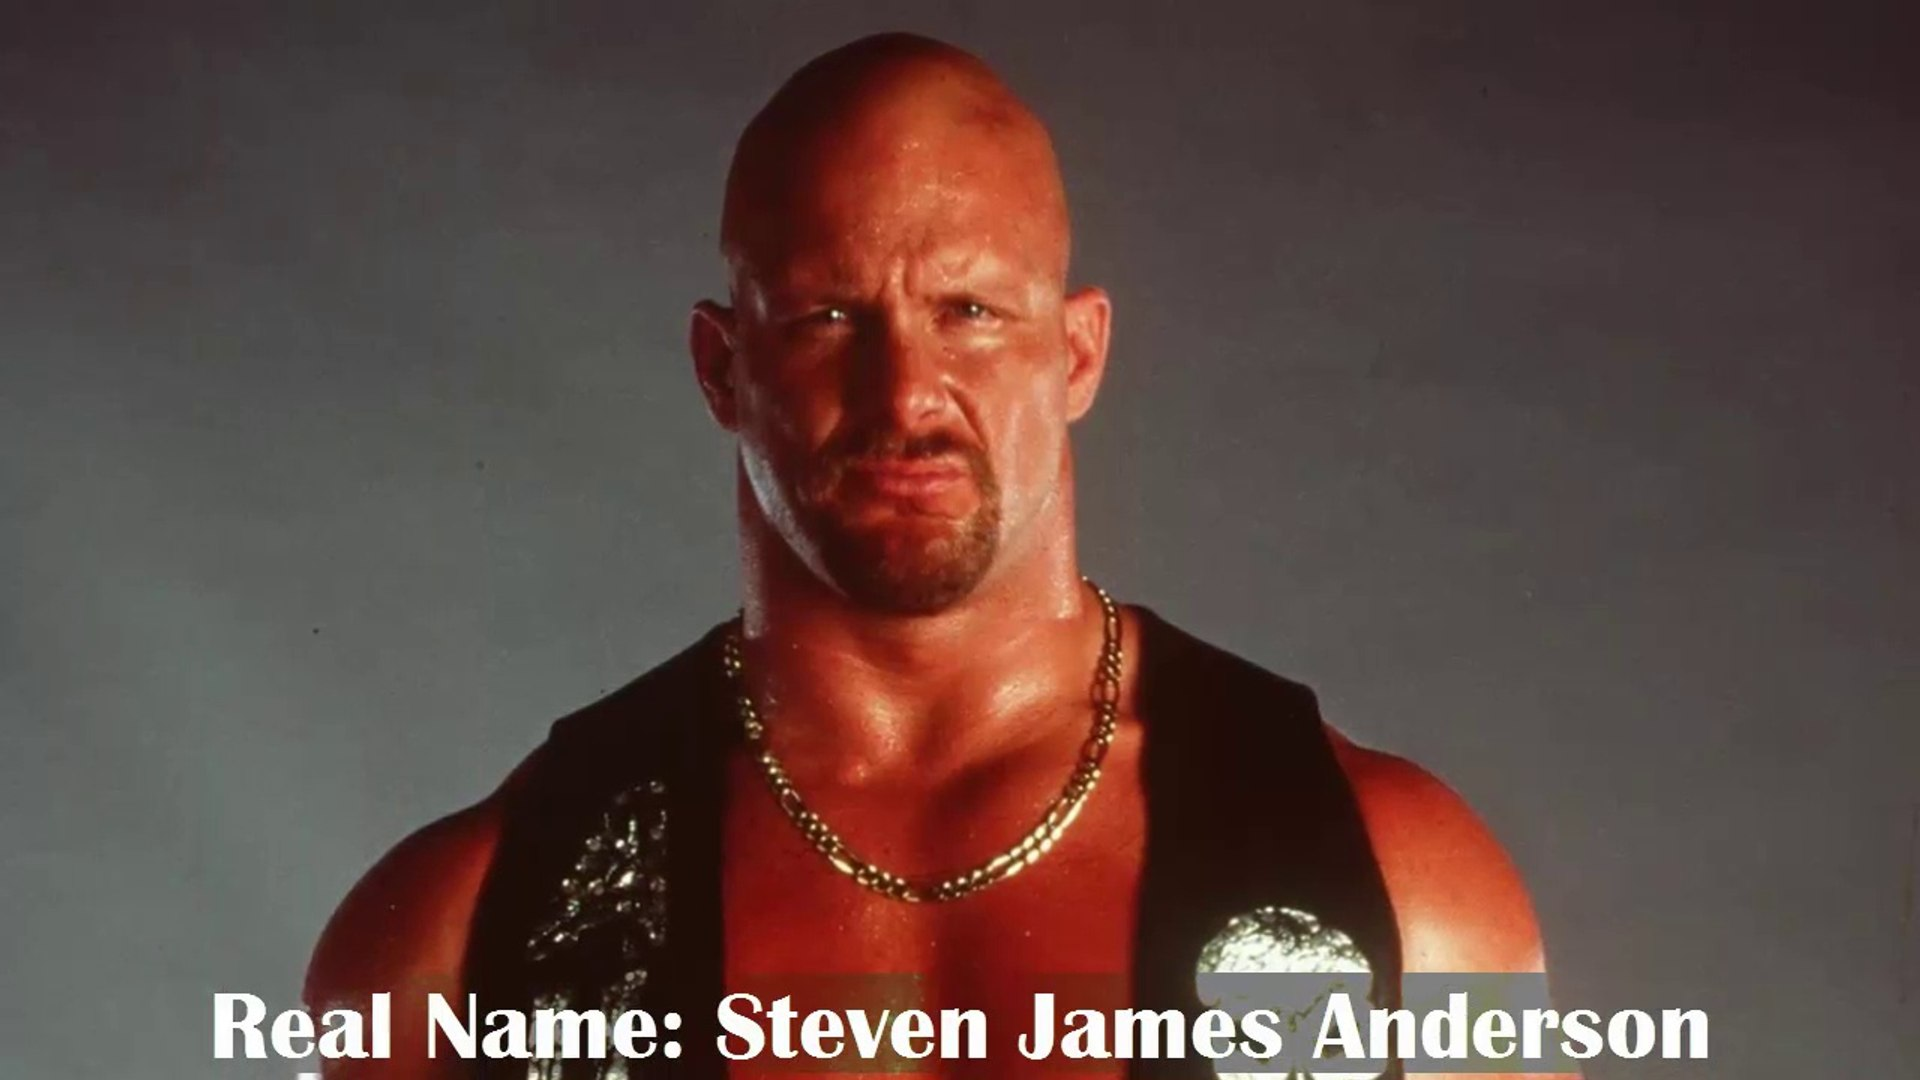 Stone Cold Steve Austin Lifestyle, Biography, Net Worth, House, Cars And Family